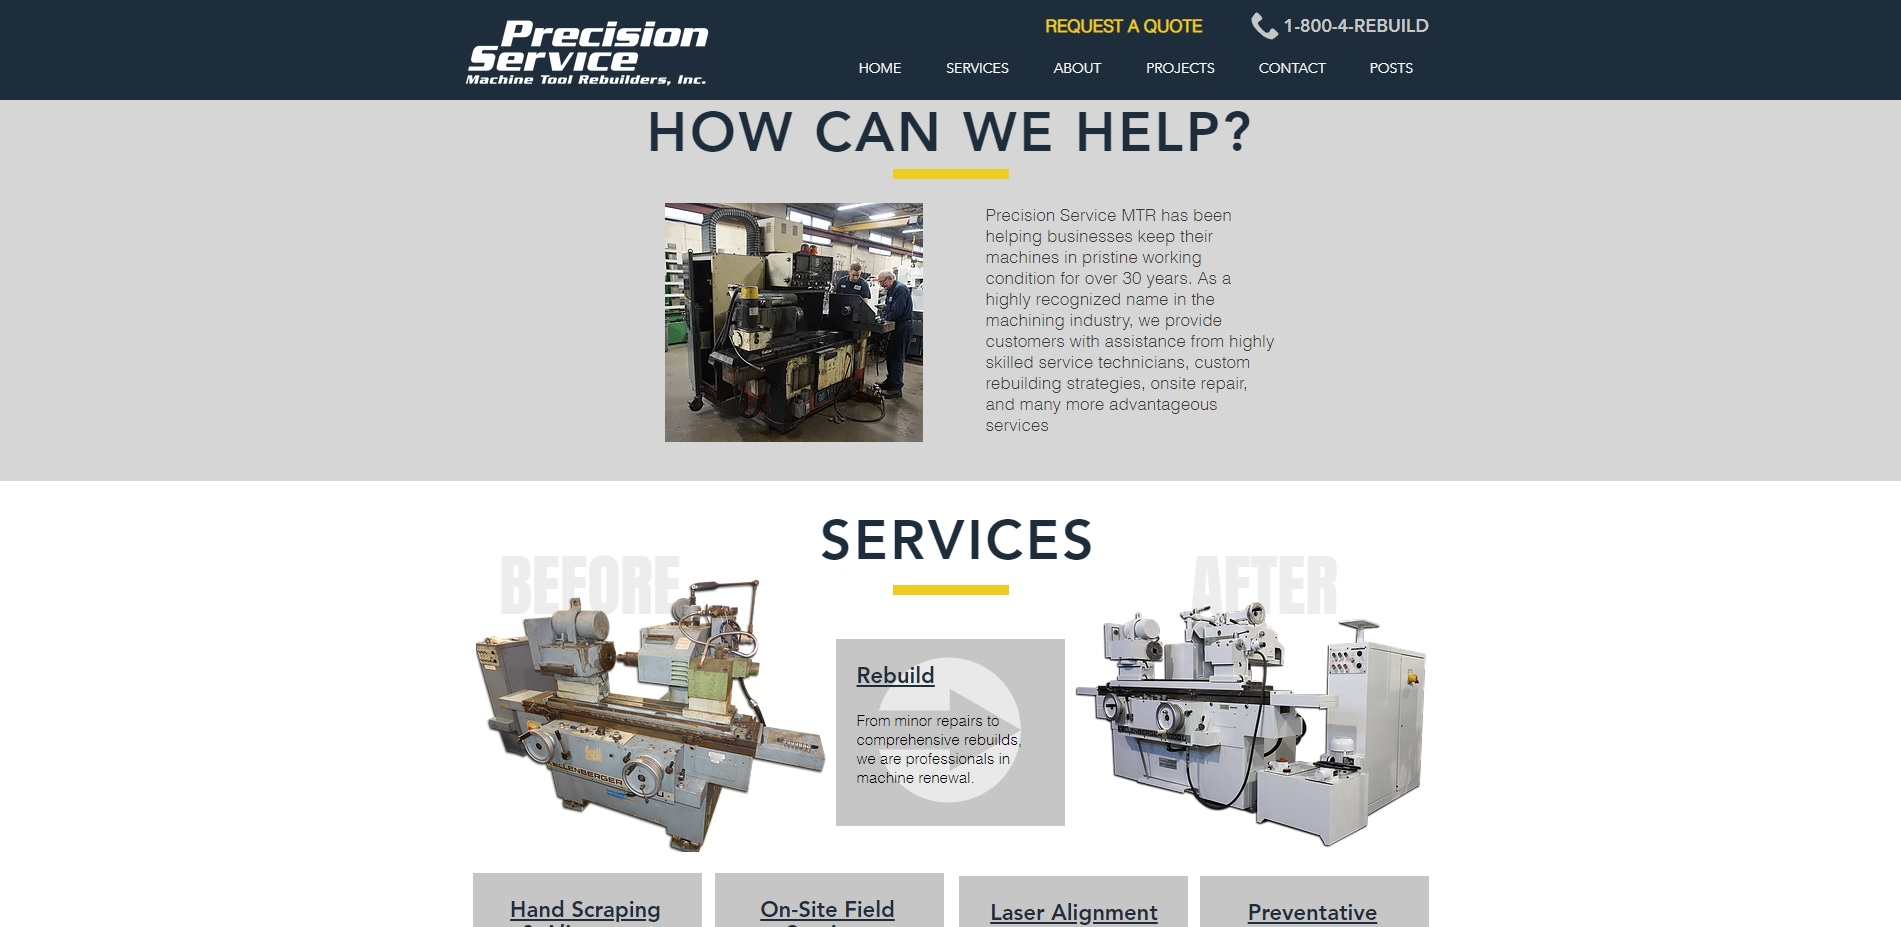 Precision Service Machine Tool Rebuilder, Inc.